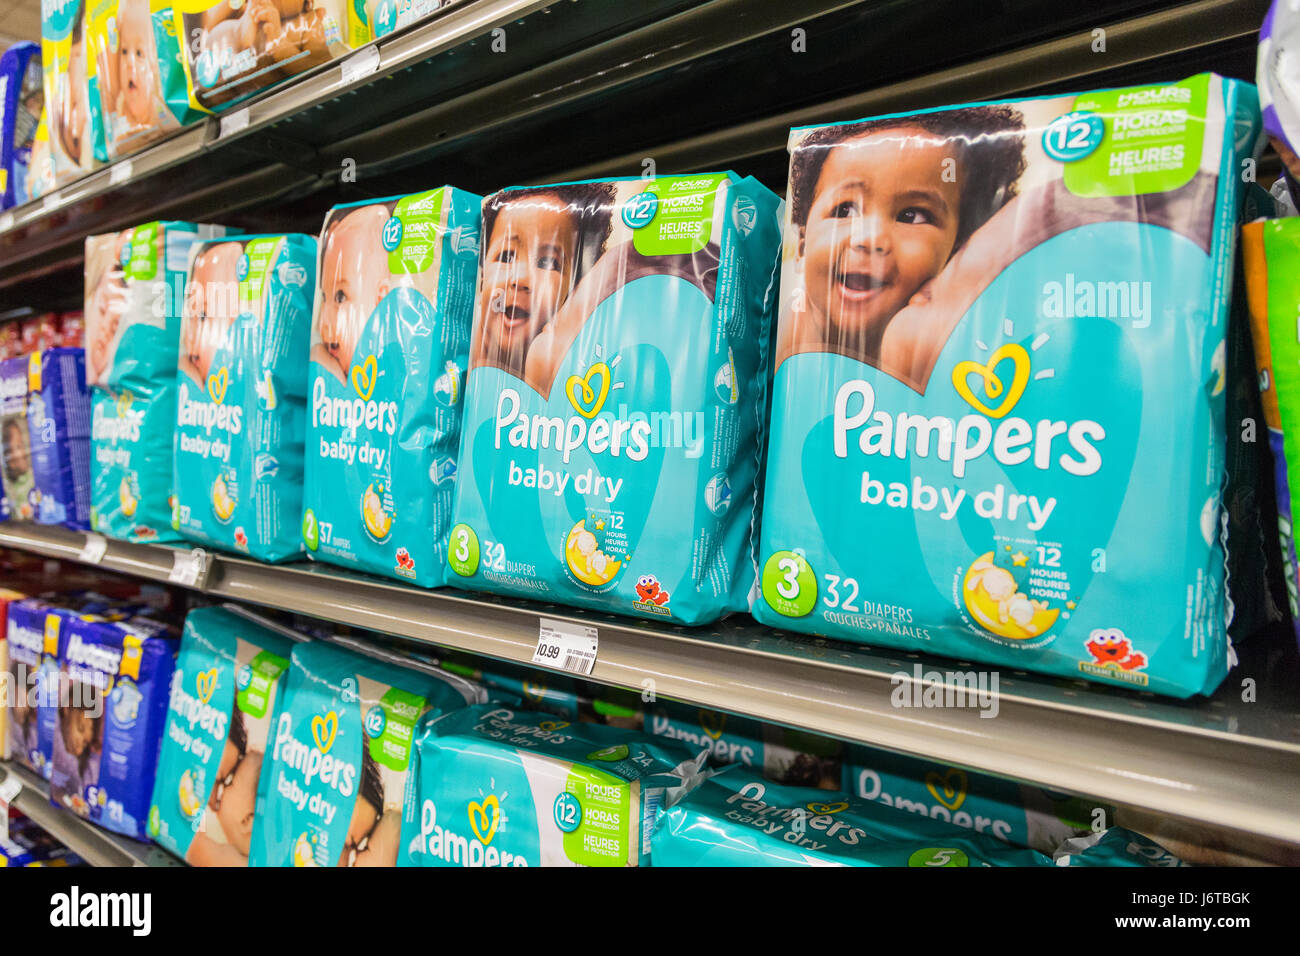 packages of Pampers brand diapers on a shelf of a grocery store - Stock Image